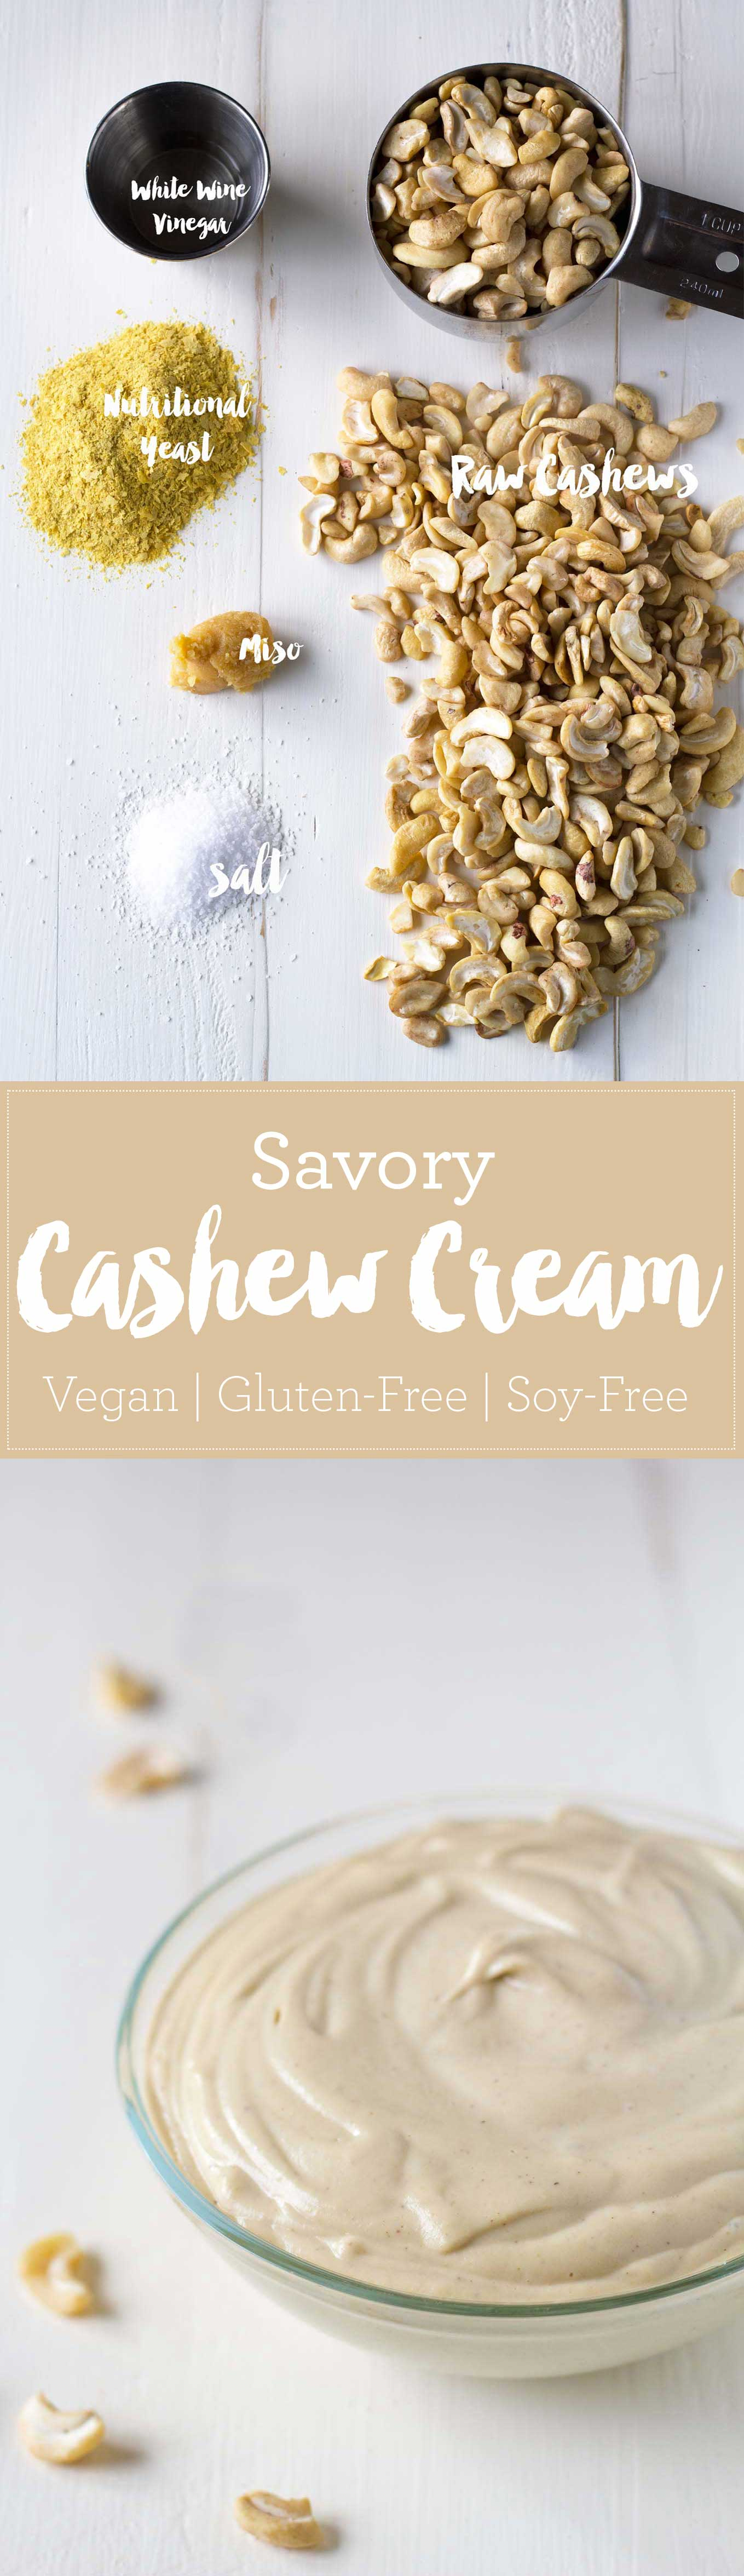 Use this savory cashew cream as a spread, add it to soups as a thickener, or use a soy-free vegan mayonnaise substitute!   https://eatwithinyourmeans.com